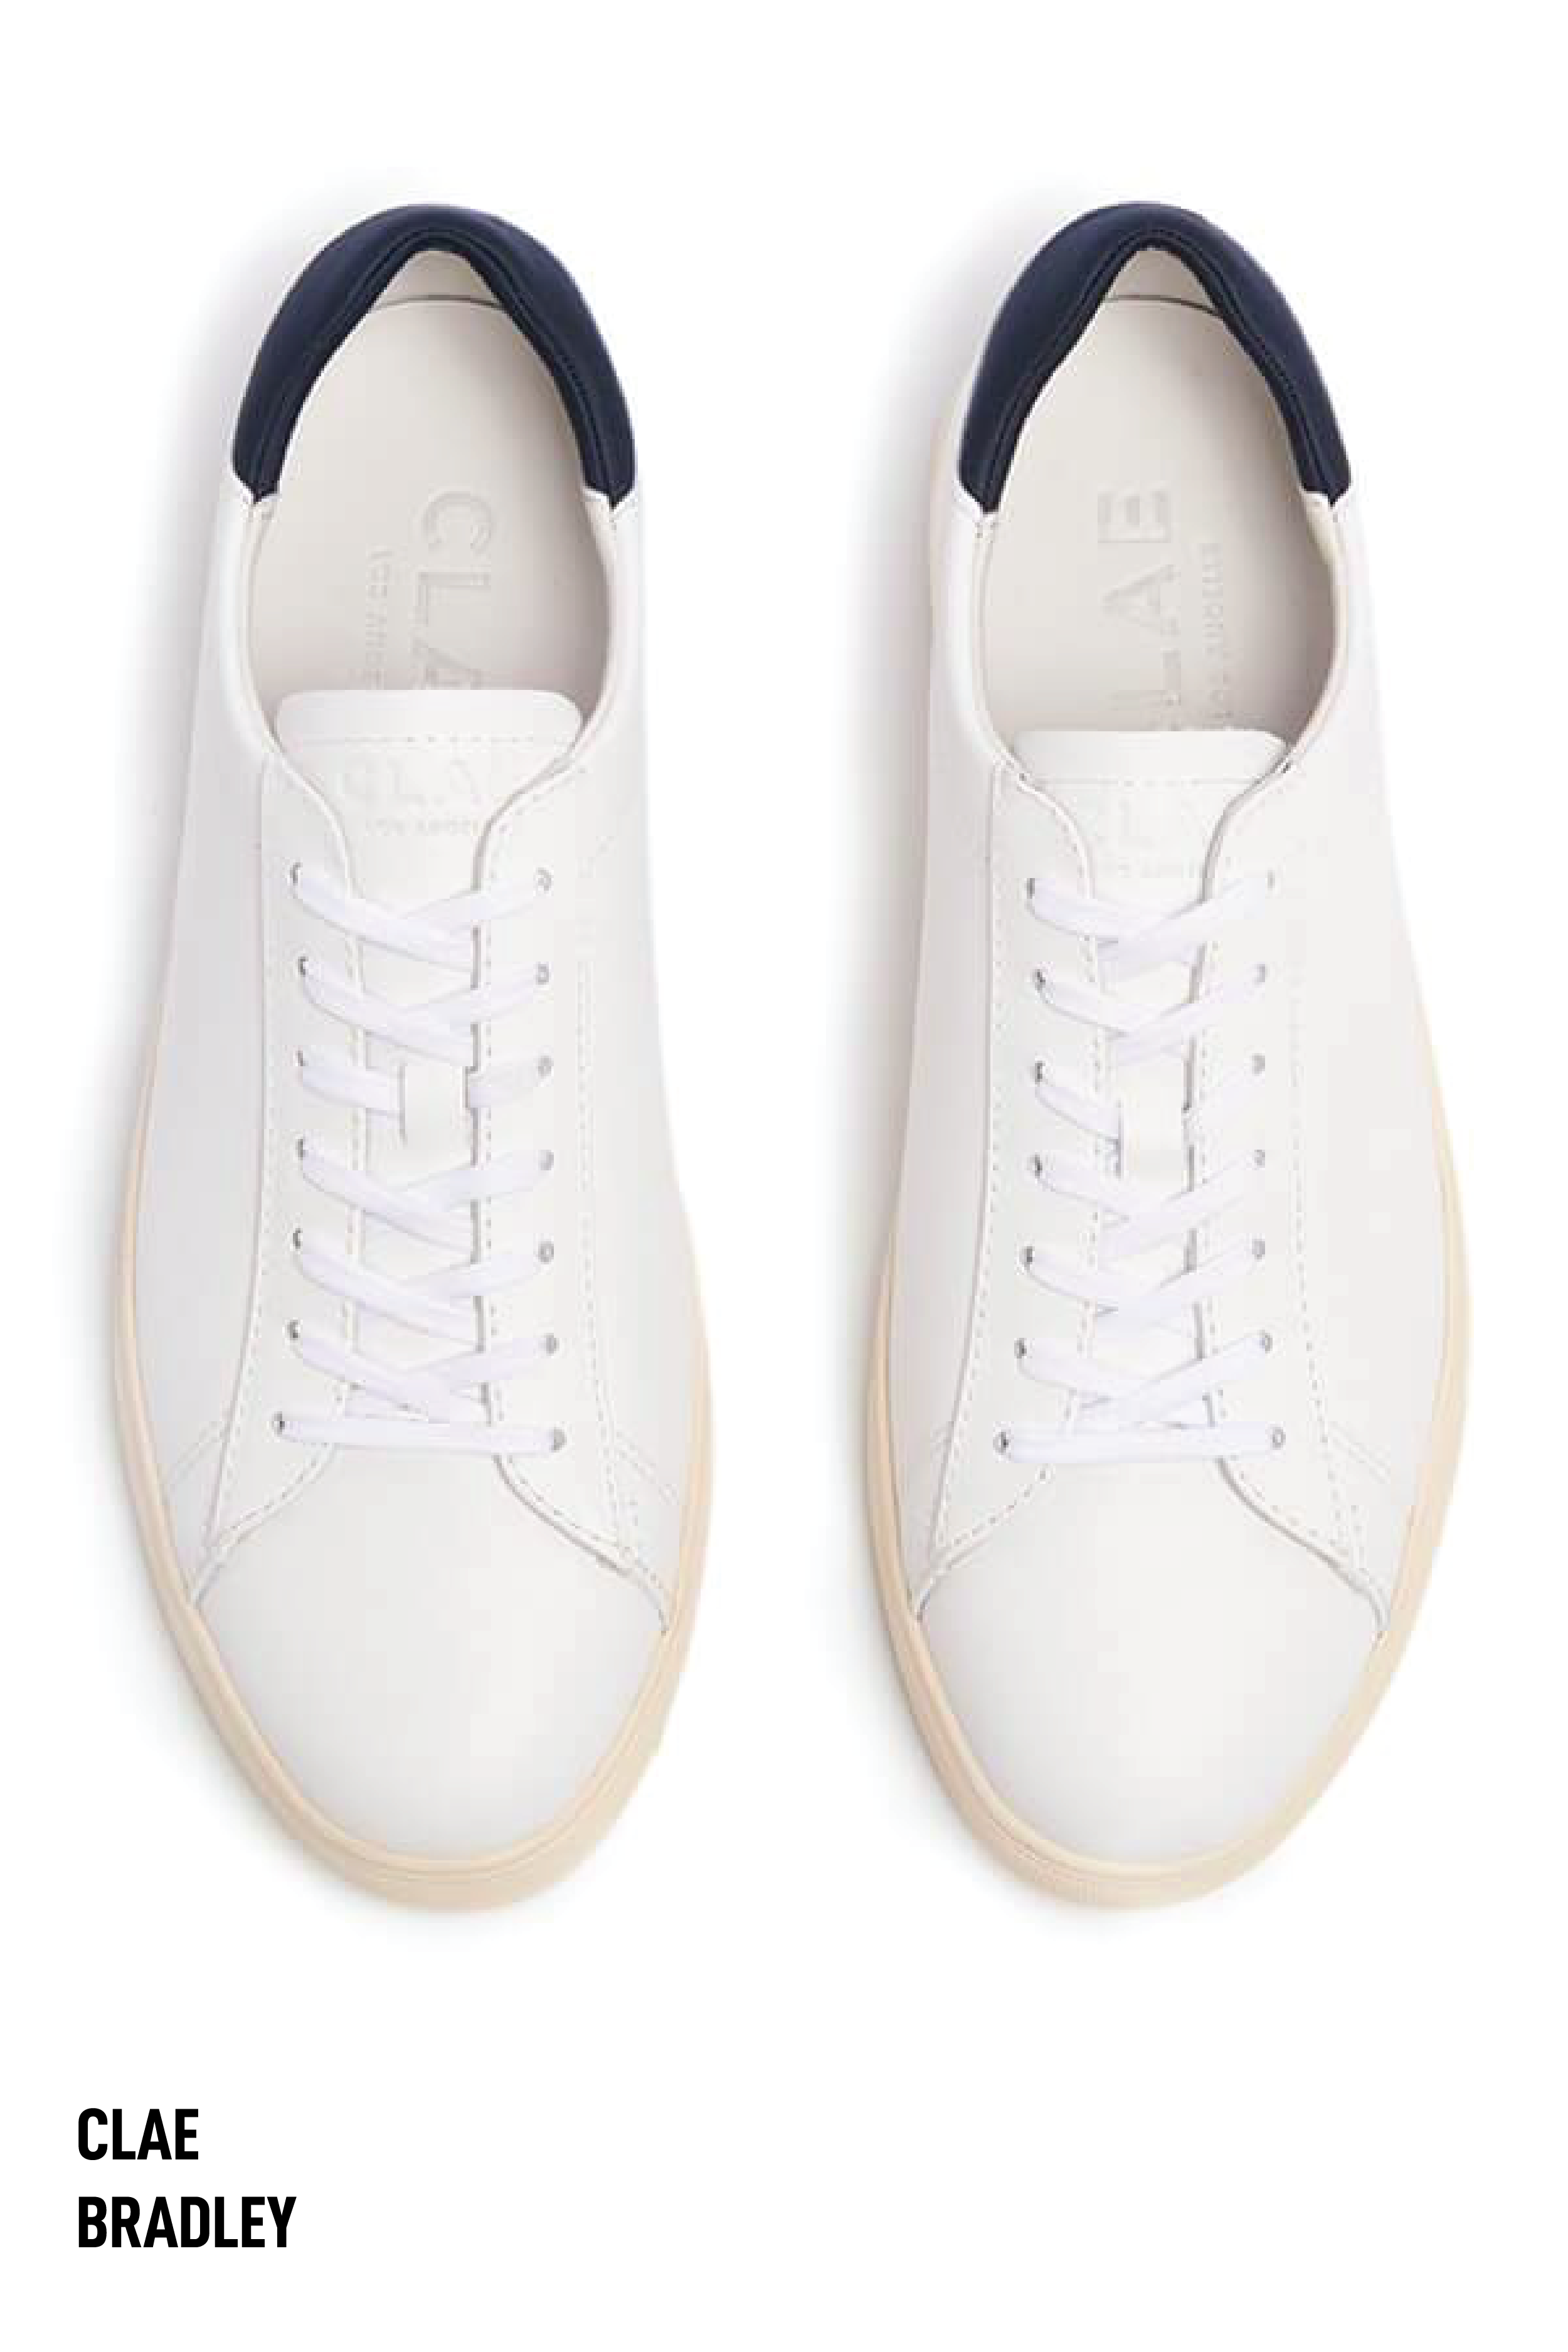 Best White Sneakers For Men For Every Budget In 2019 White Sneakers Men Best White Sneakers White Sneakers